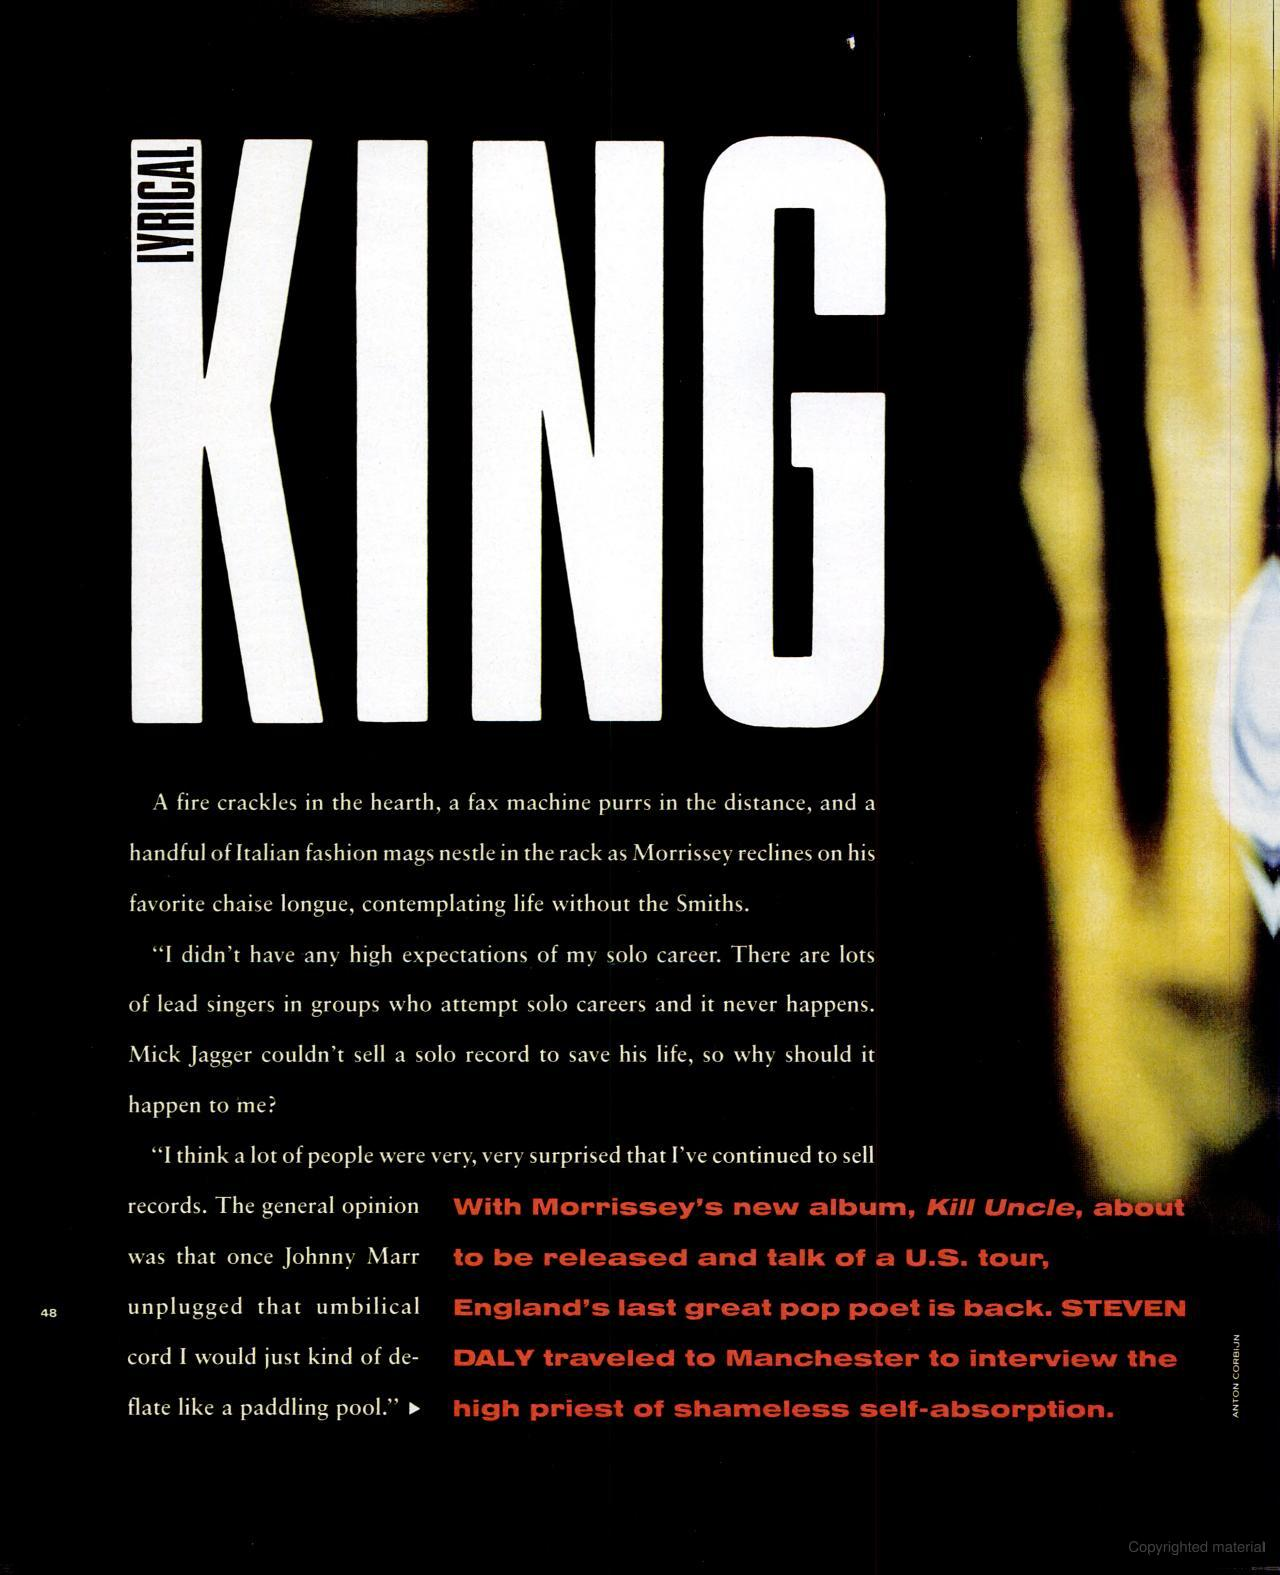 Morrissey ~ SPIN April 1991 Vol 7 No 1 (i).jpg